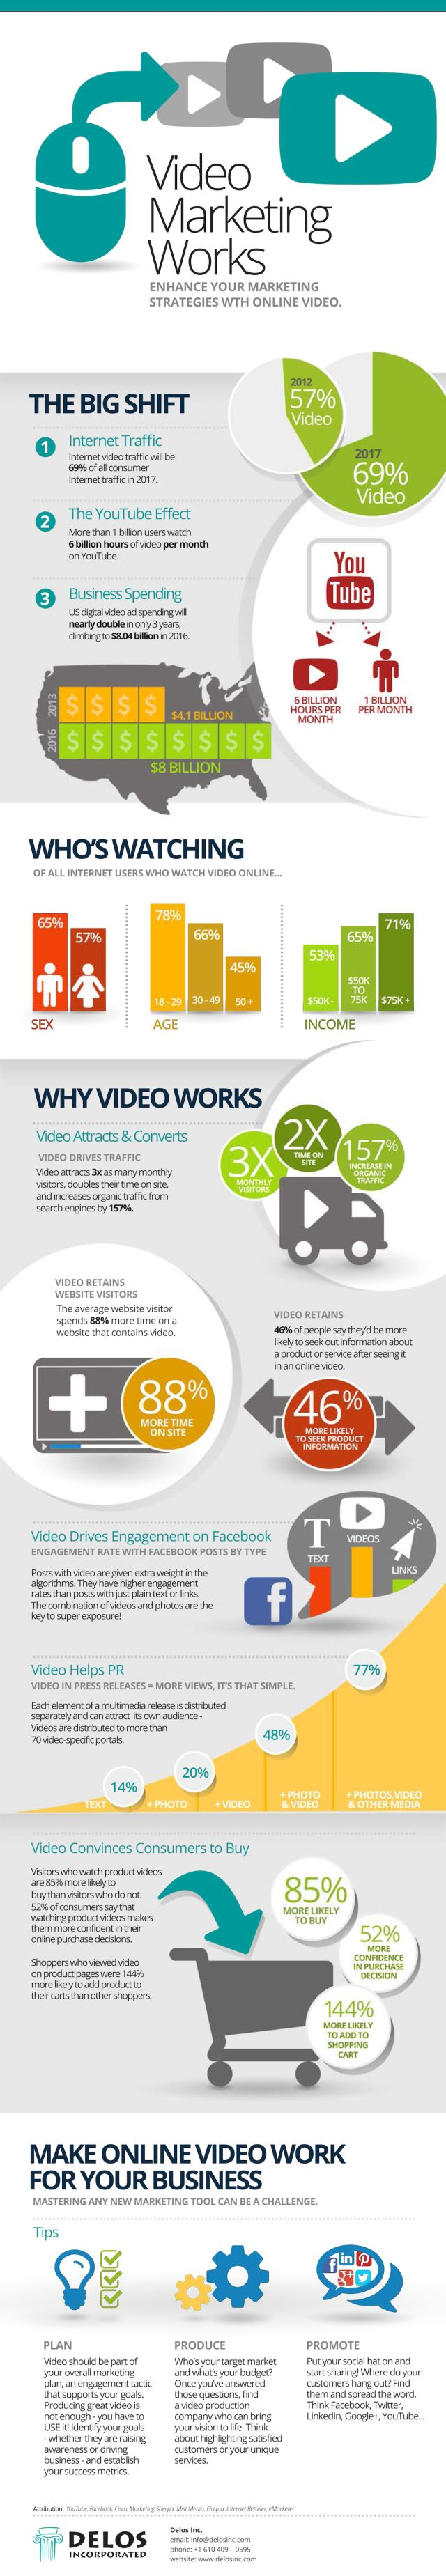 Video Marketing Works for business small or large